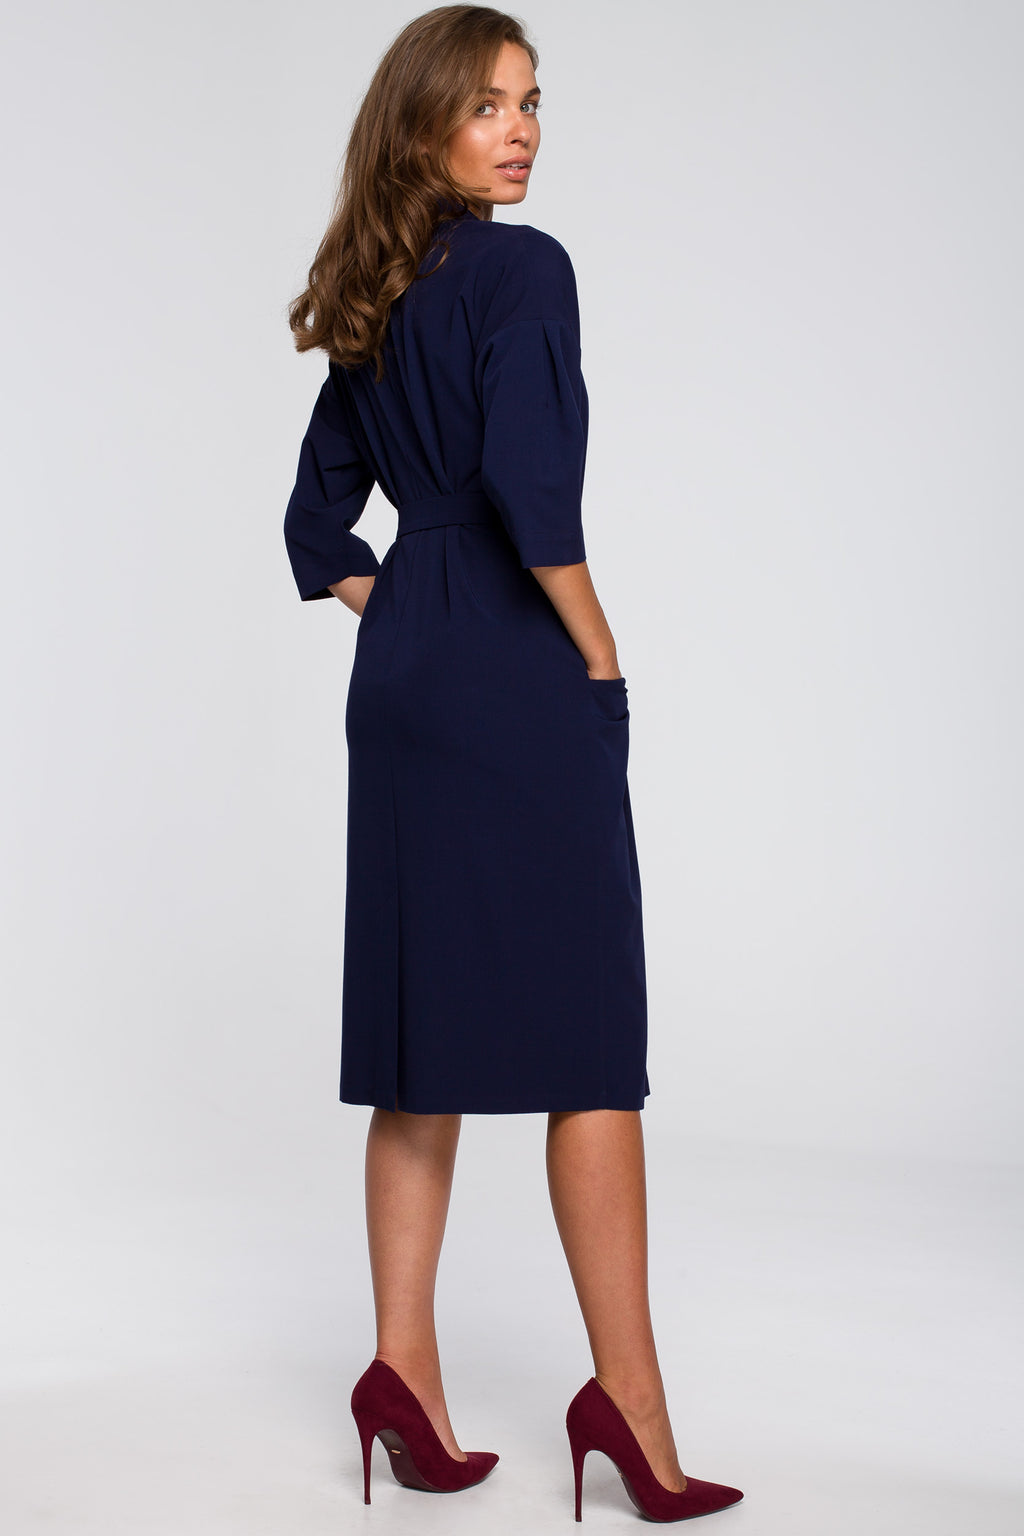 Navy Blue Elbow Sleeve Shirt Dress - So Chic Boutique